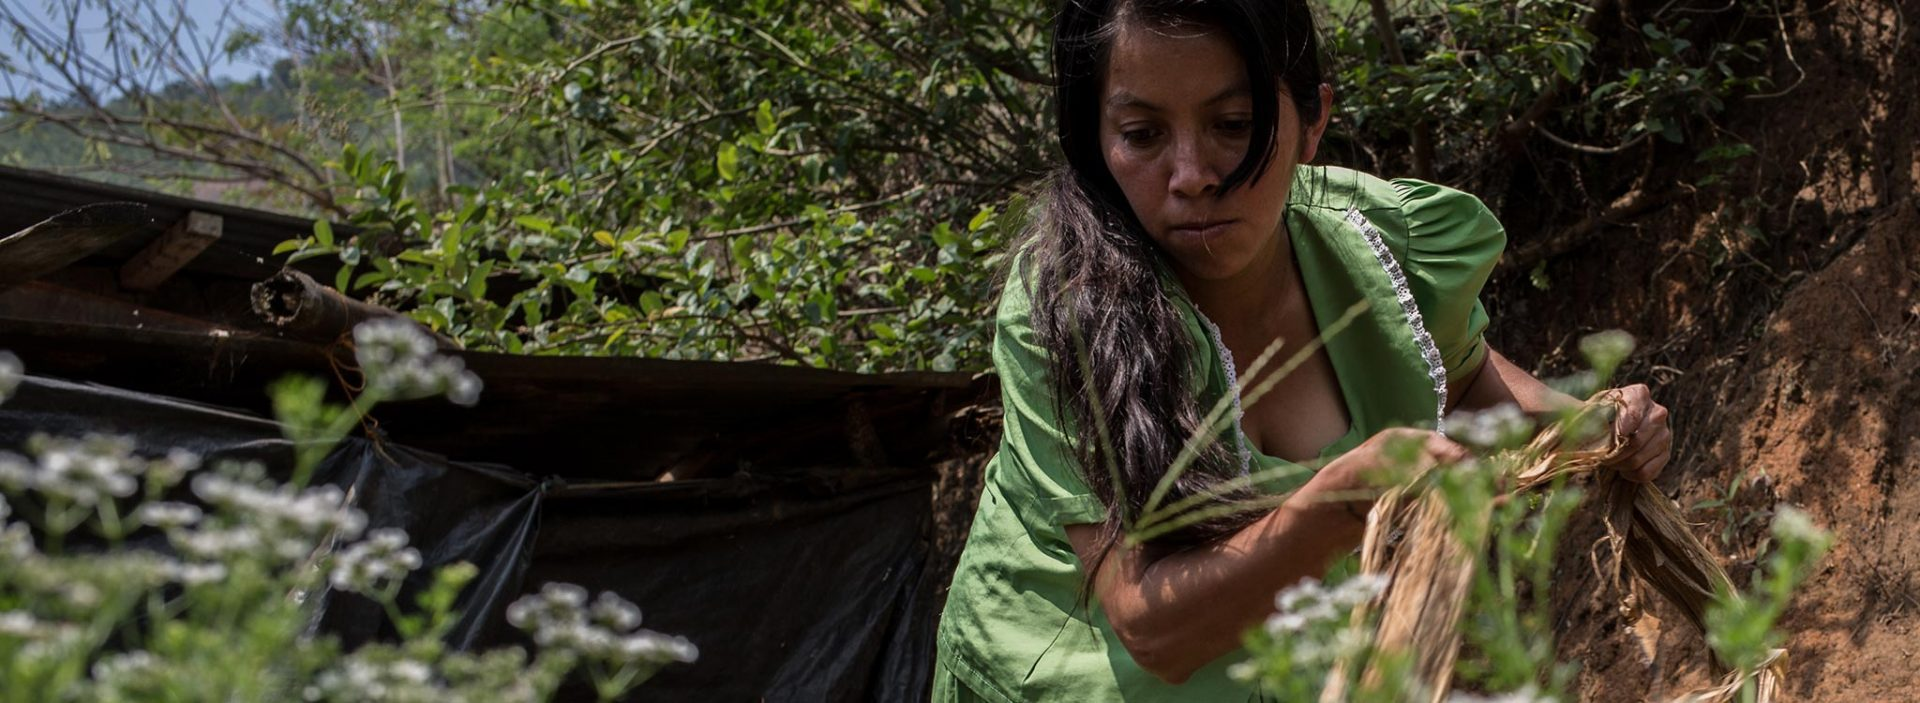 A woman works in a field at an Action Against Hunger project in Guatemala.